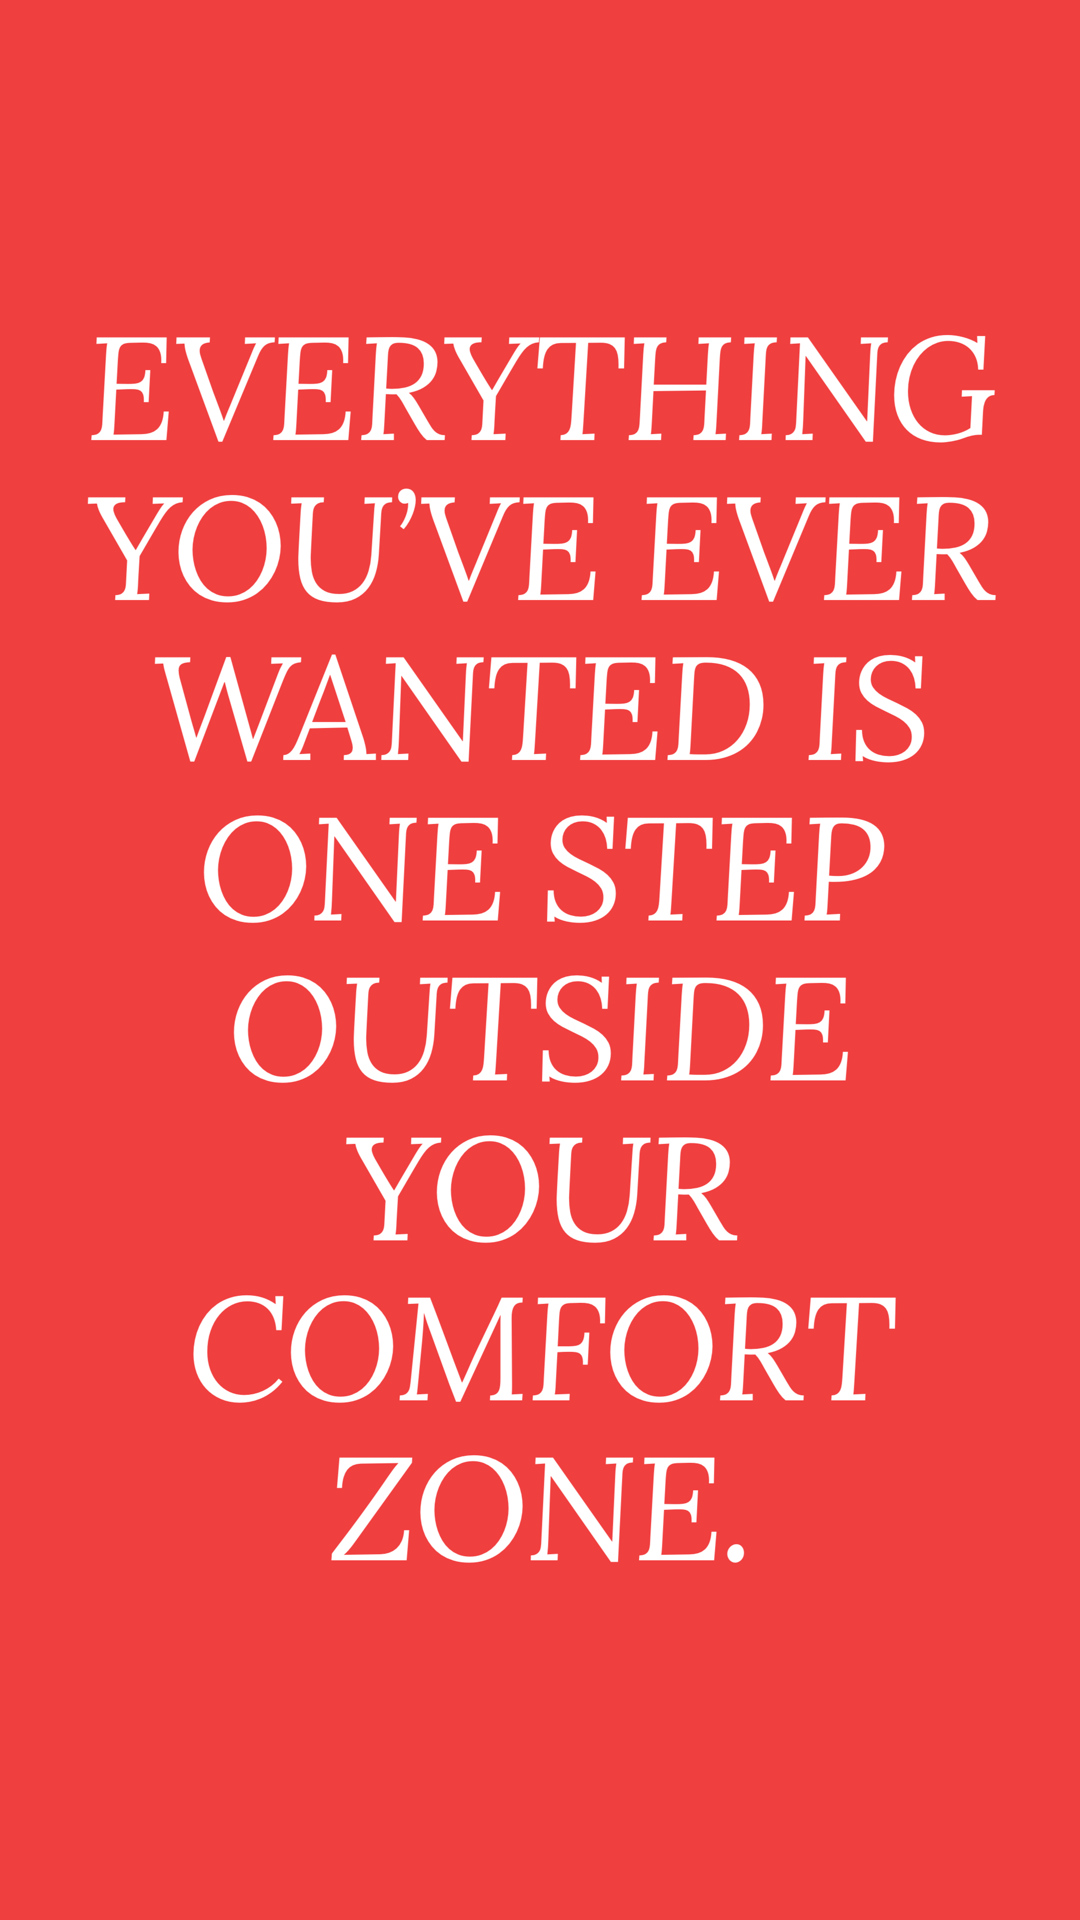 Comfort Zone Quotes Comfort Zone Quotes Progress Quotes